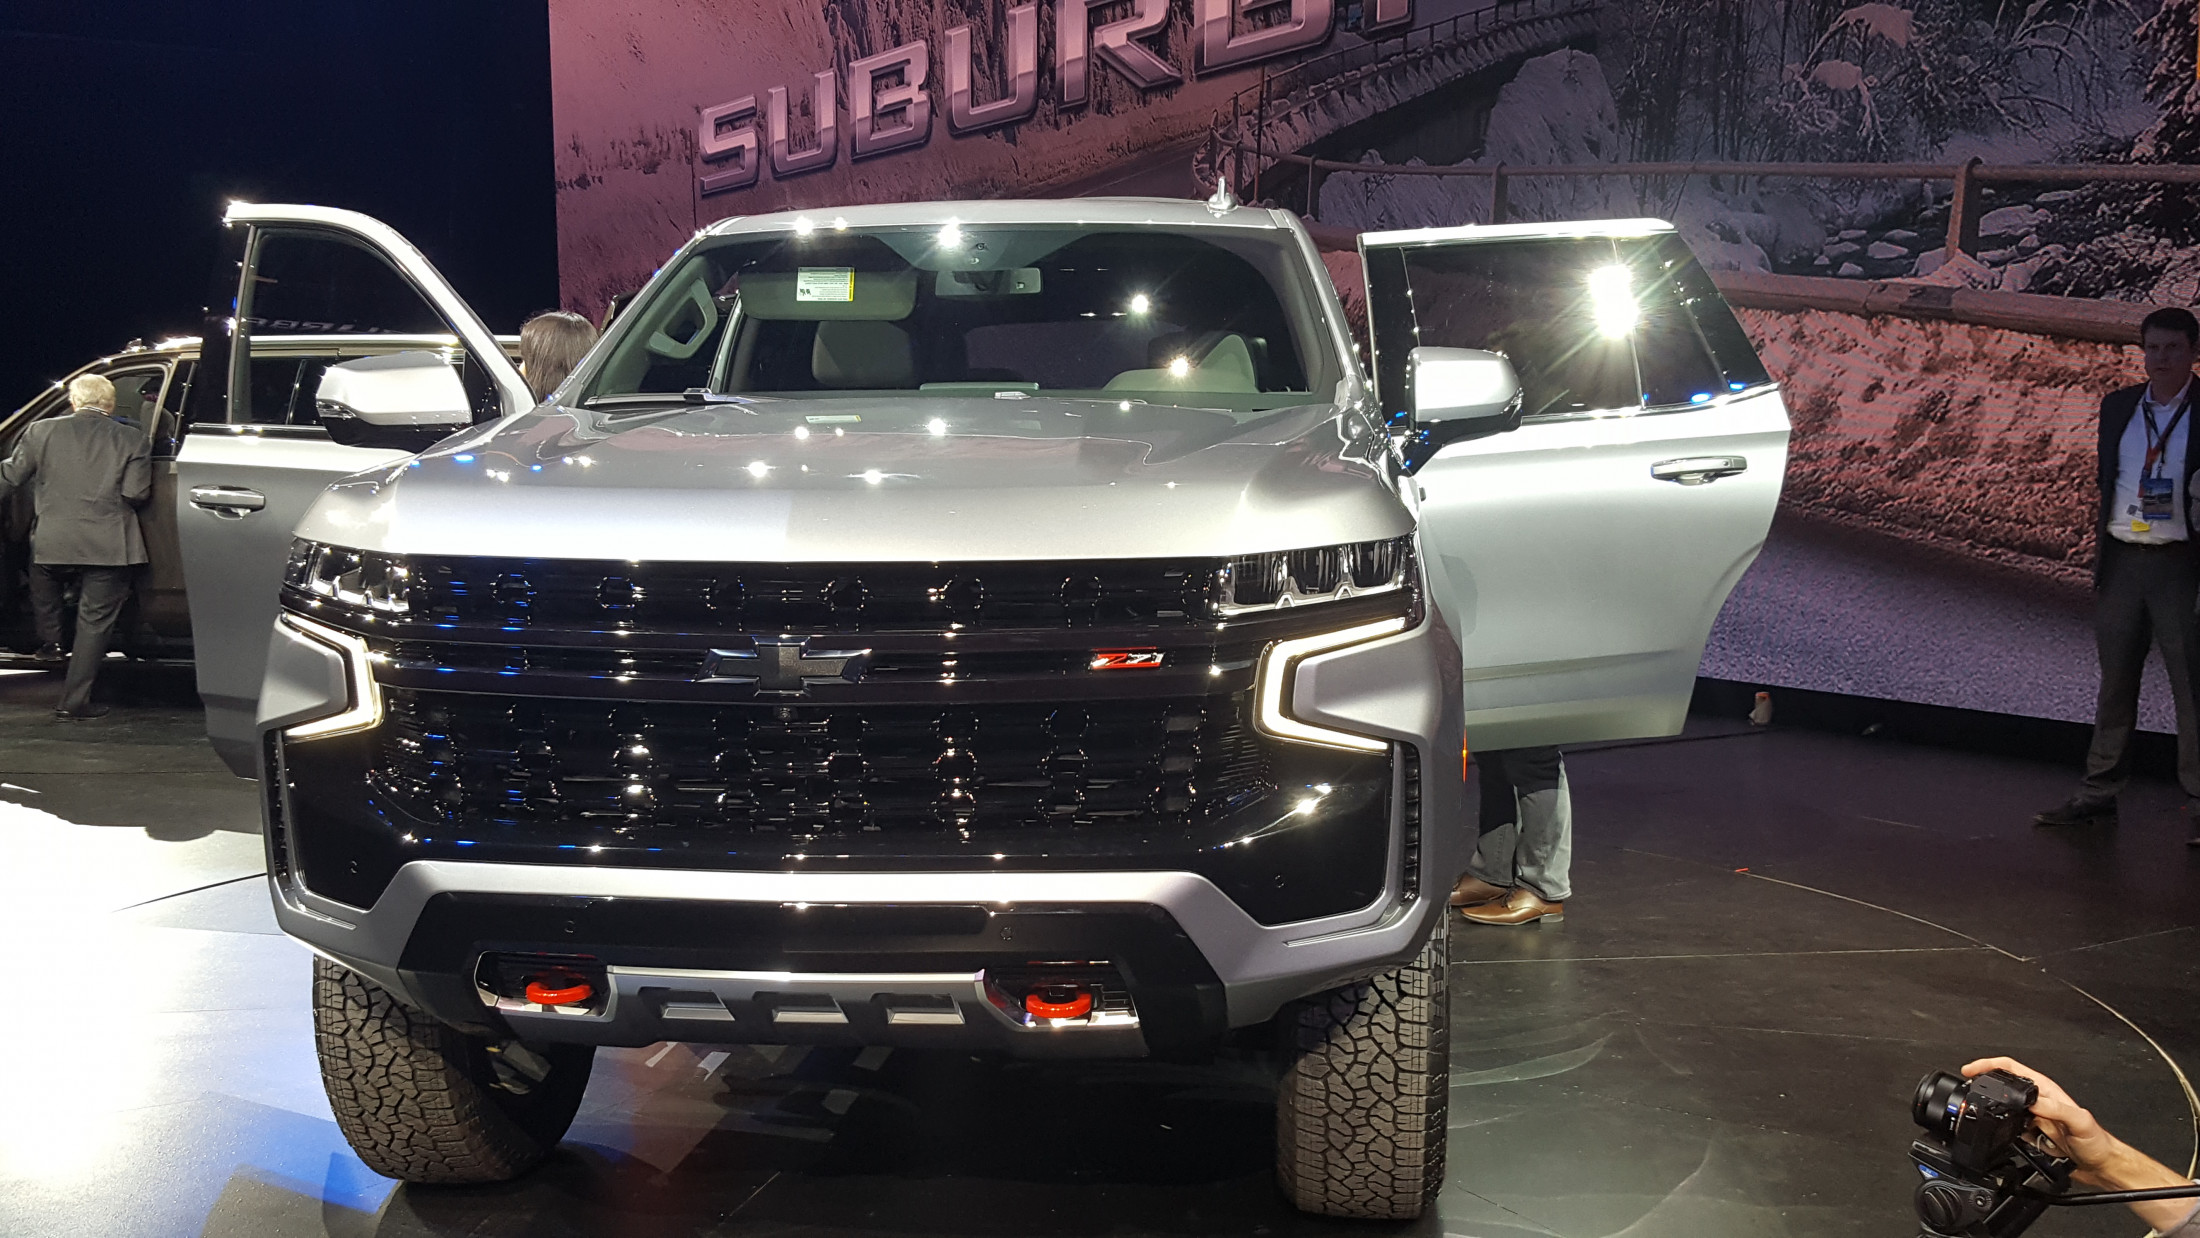 2021 Chevrolet Tahoe Z71 Busts The Trails Has Sequoia Trd Pro In Its Sights Off Road Car Revs Daily Com